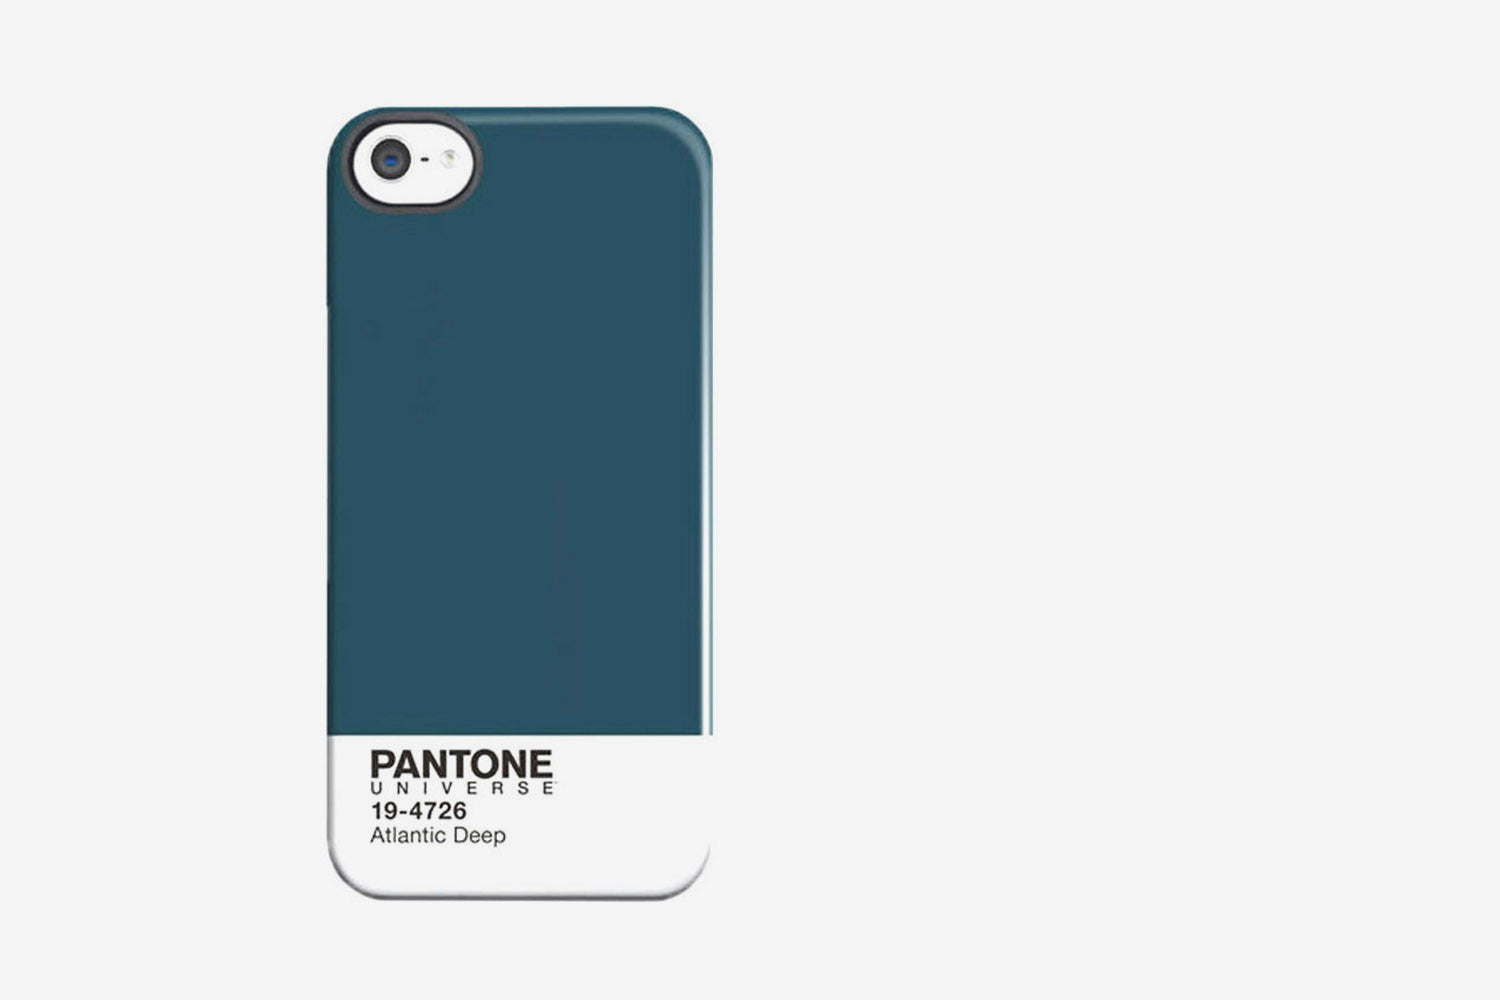 Pantone iPhone 5 Case (More Colors)